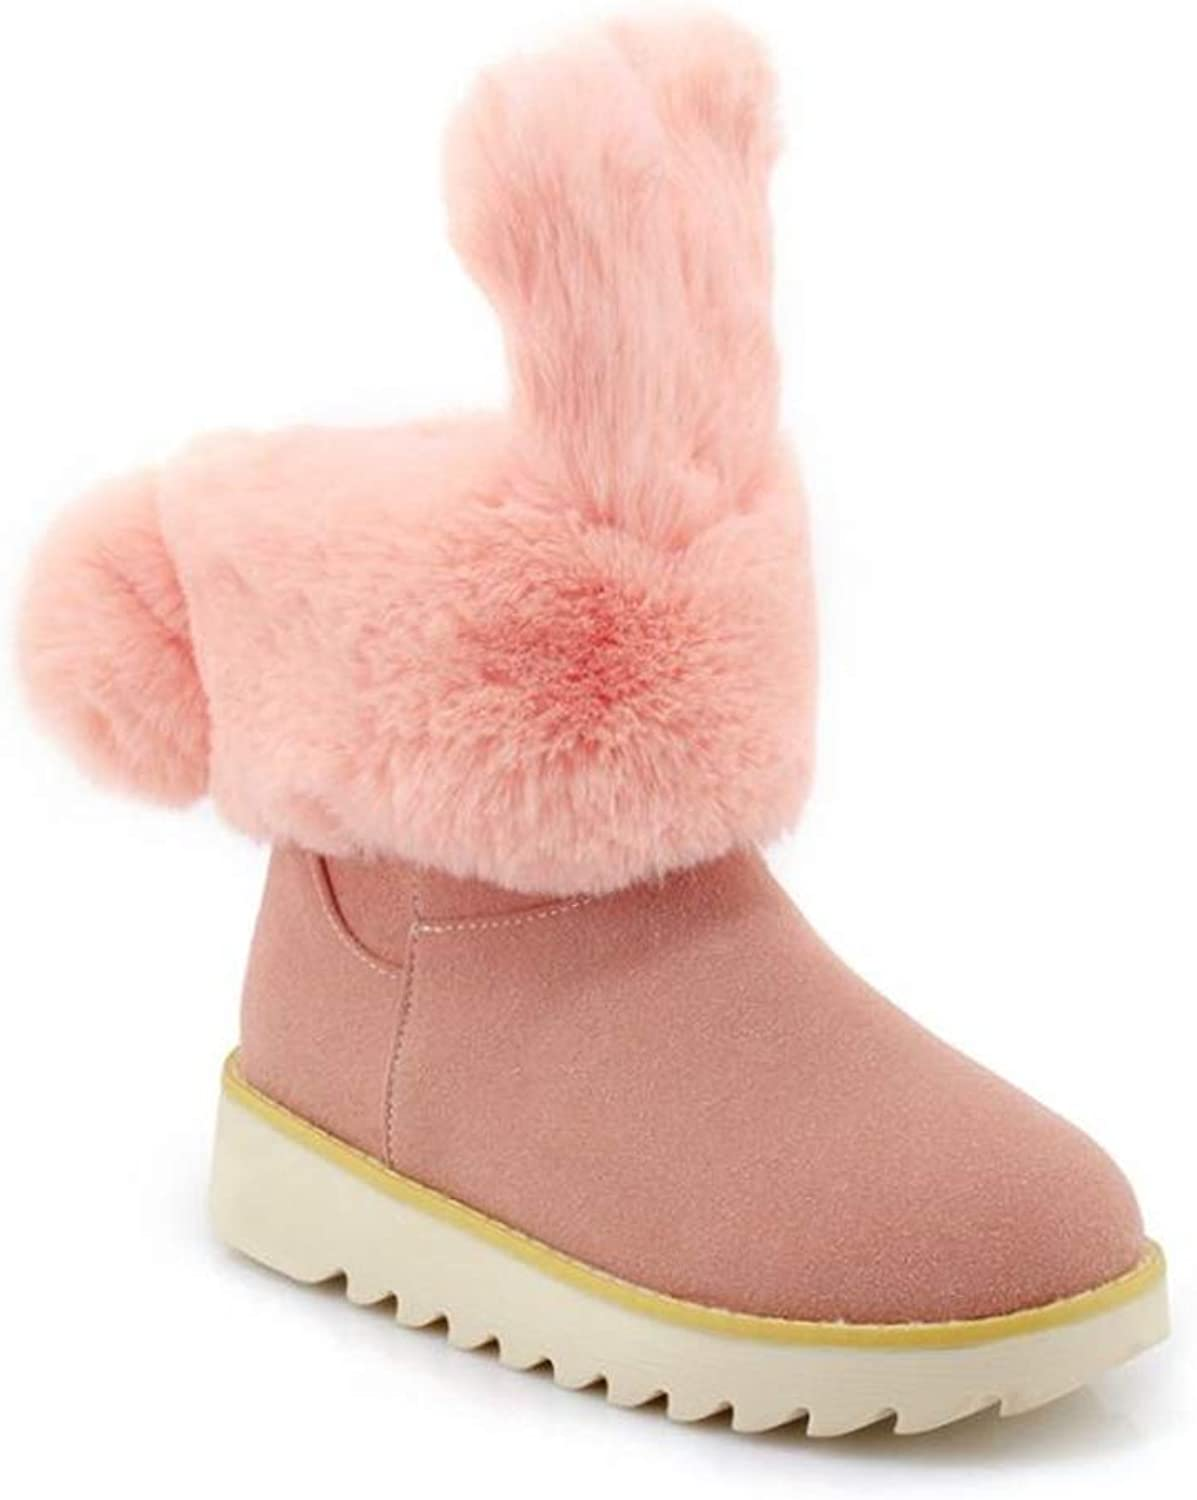 Gusha Winter Women's shoes Platform Boots Ankle Boots Cute Snow Boots